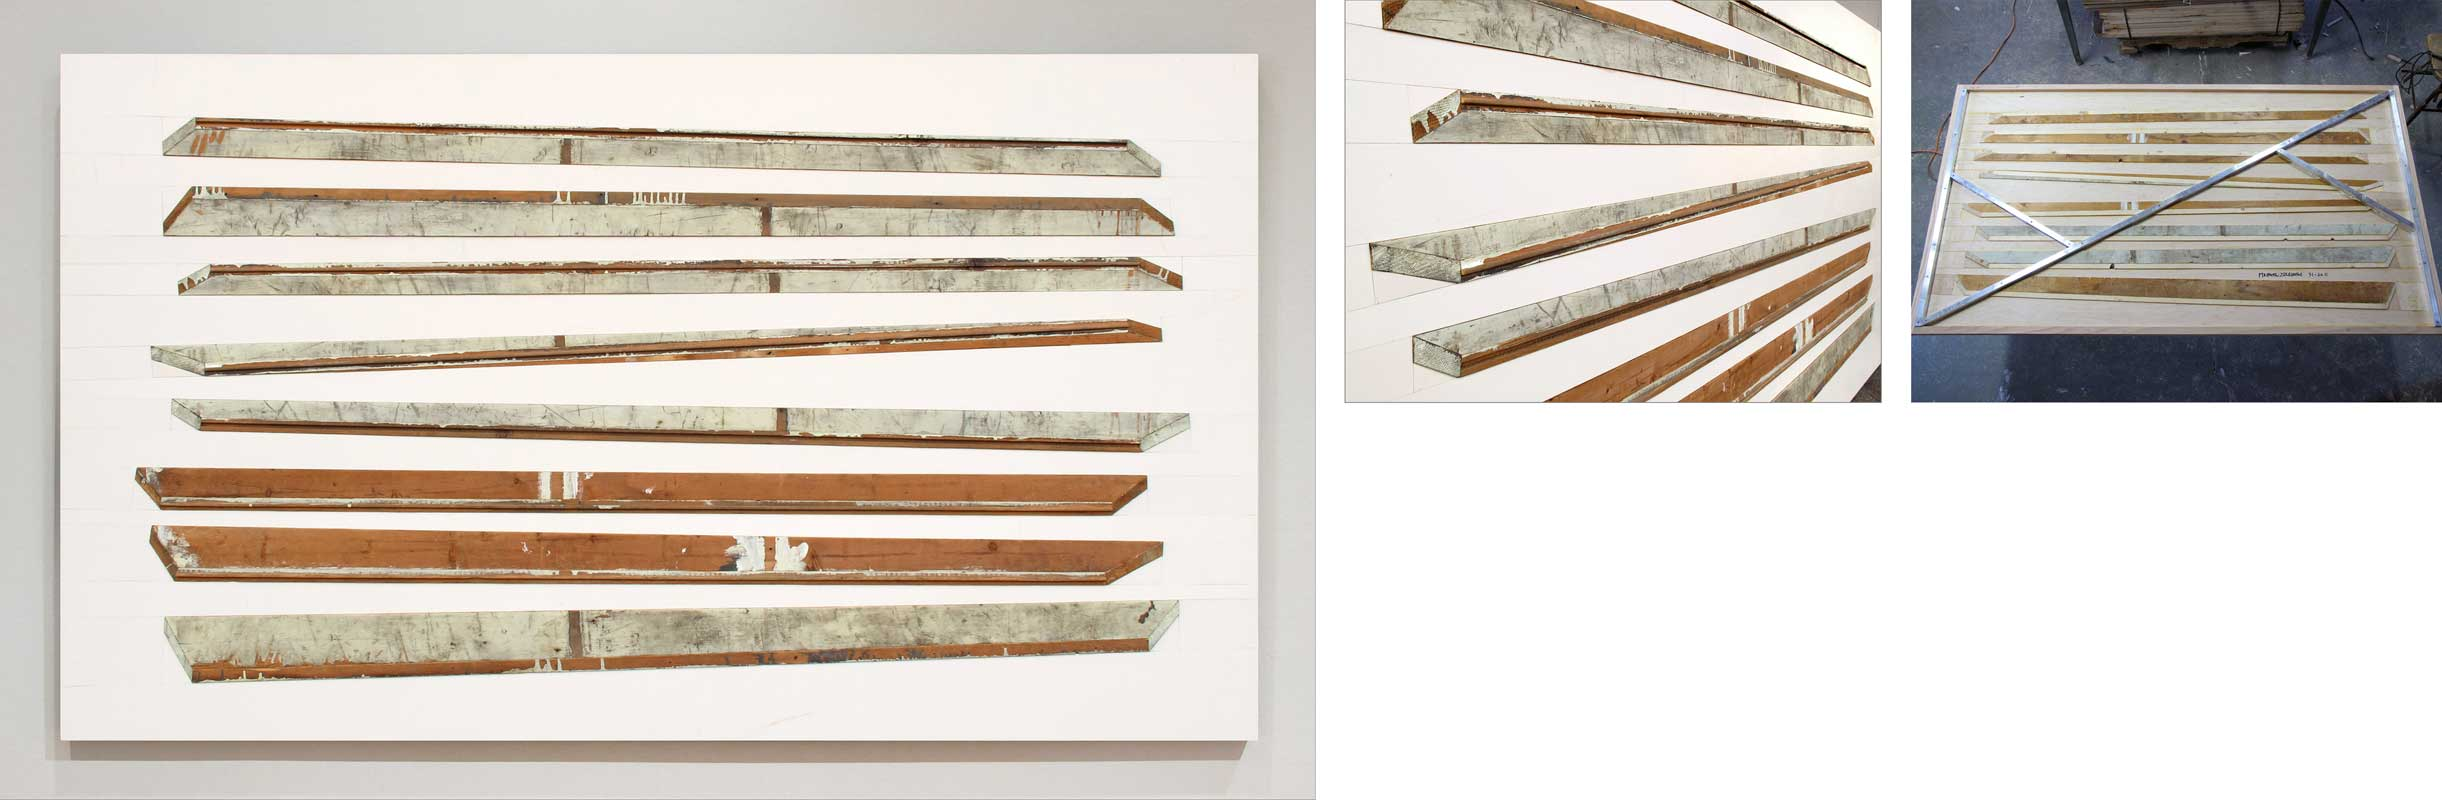 assemblage with found boards